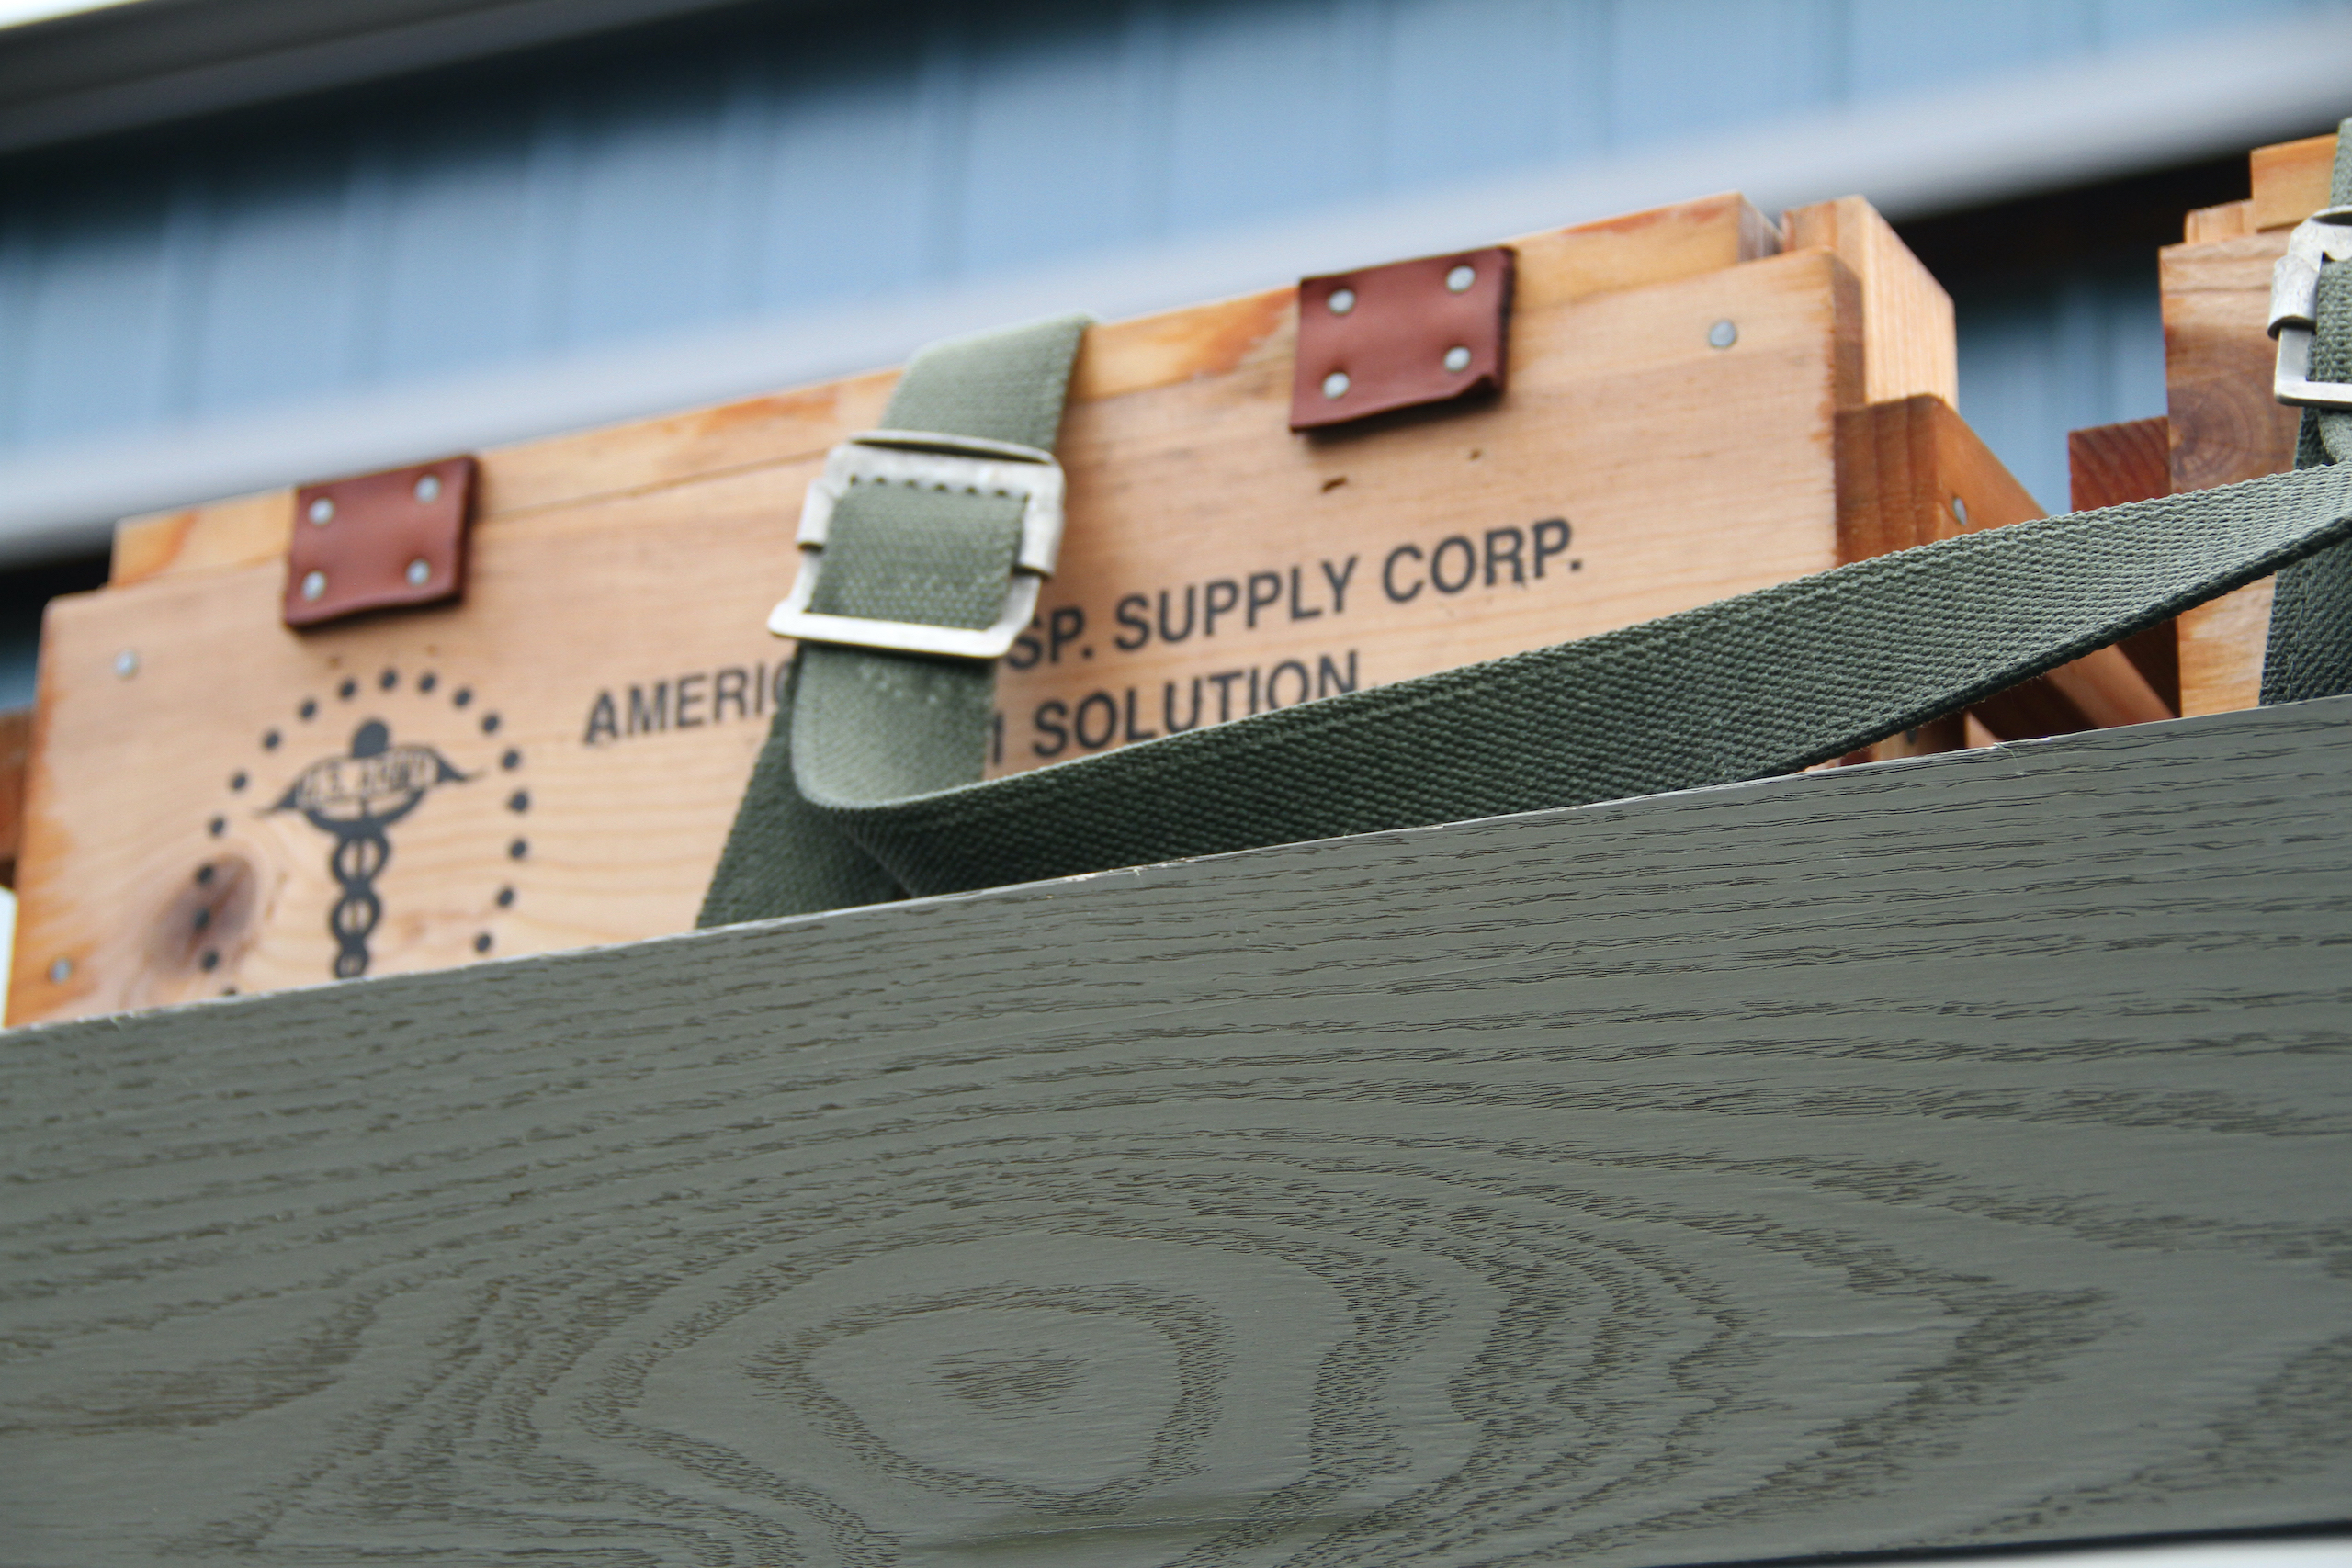 Military vehicle convoy supply boxes